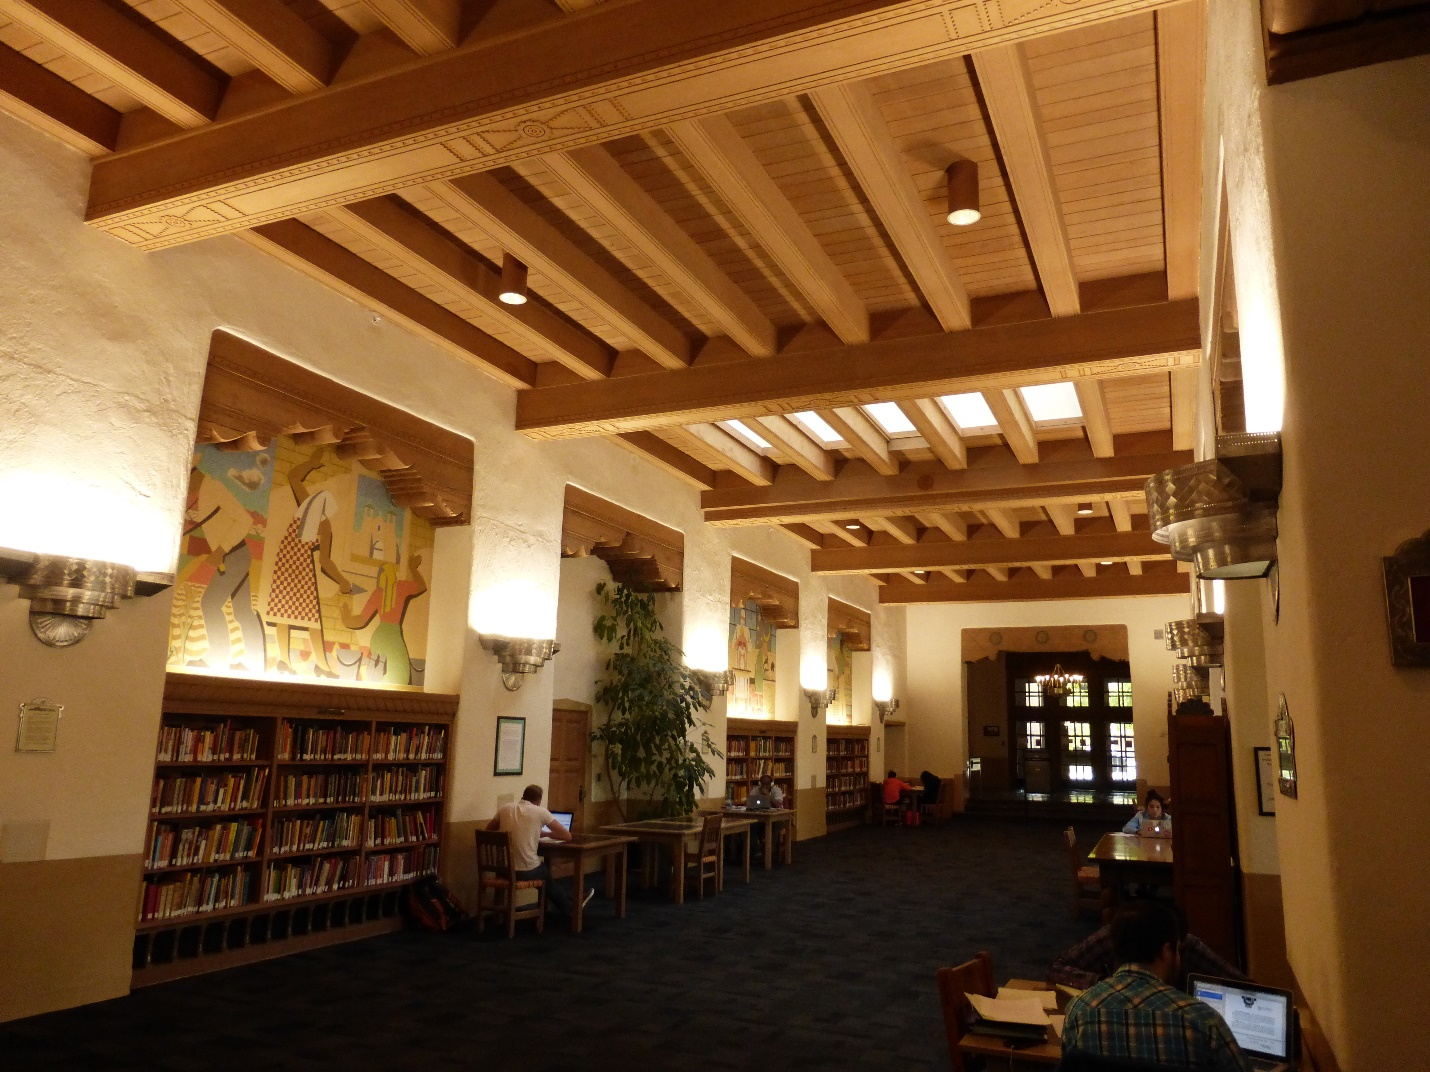 New Mexico - Zimmerman Library at UNM